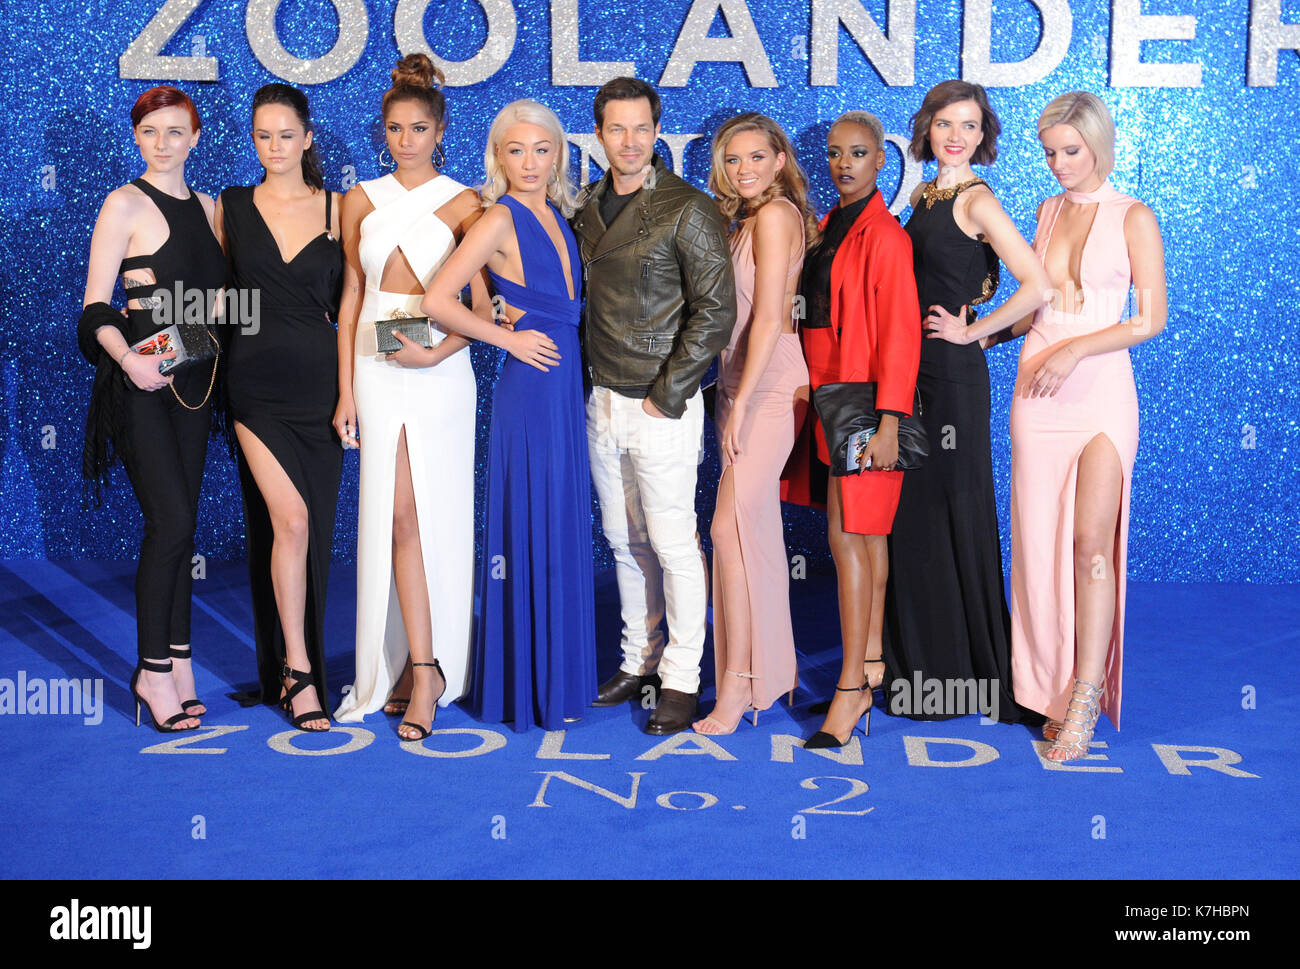 Photo Must Be Credited ©Kate Green/Alpha Press 079965 04/02/2016 Megan Brunell Alex Kelly Amreen Akhtar Bethan Sowerby Paul Sculfor Jenna McMahon Angel Cole Chloe Keenan Georgia Butler at the Zoolander 2 Movie Premiere at Empire Leicester Square, London. - Stock Image